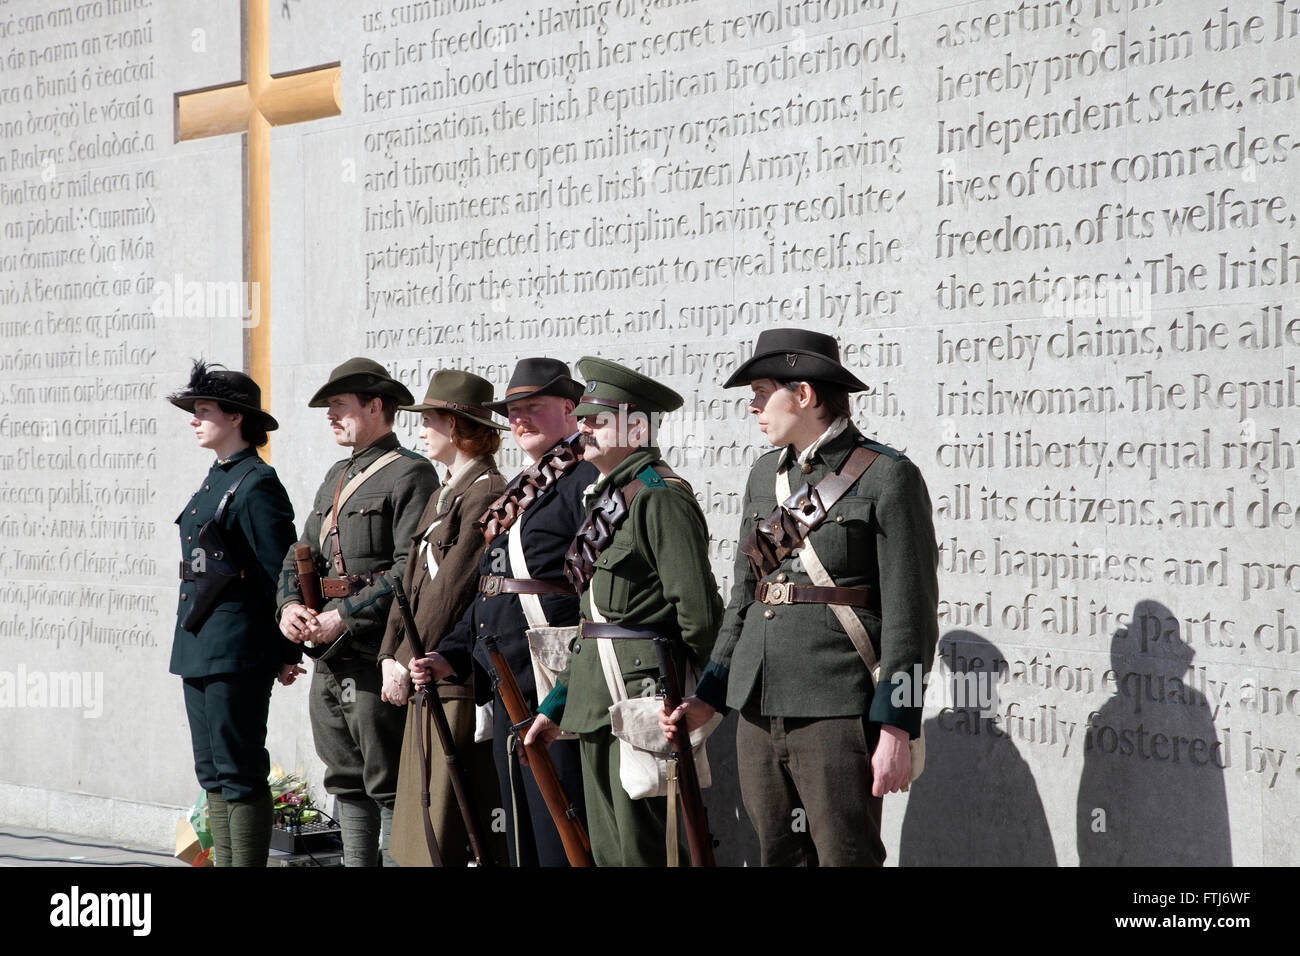 Actors portraying the 1916 Easter Rising leaders at Arbor Hill Cemetery in Dublin city, Ireland. - Stock Image